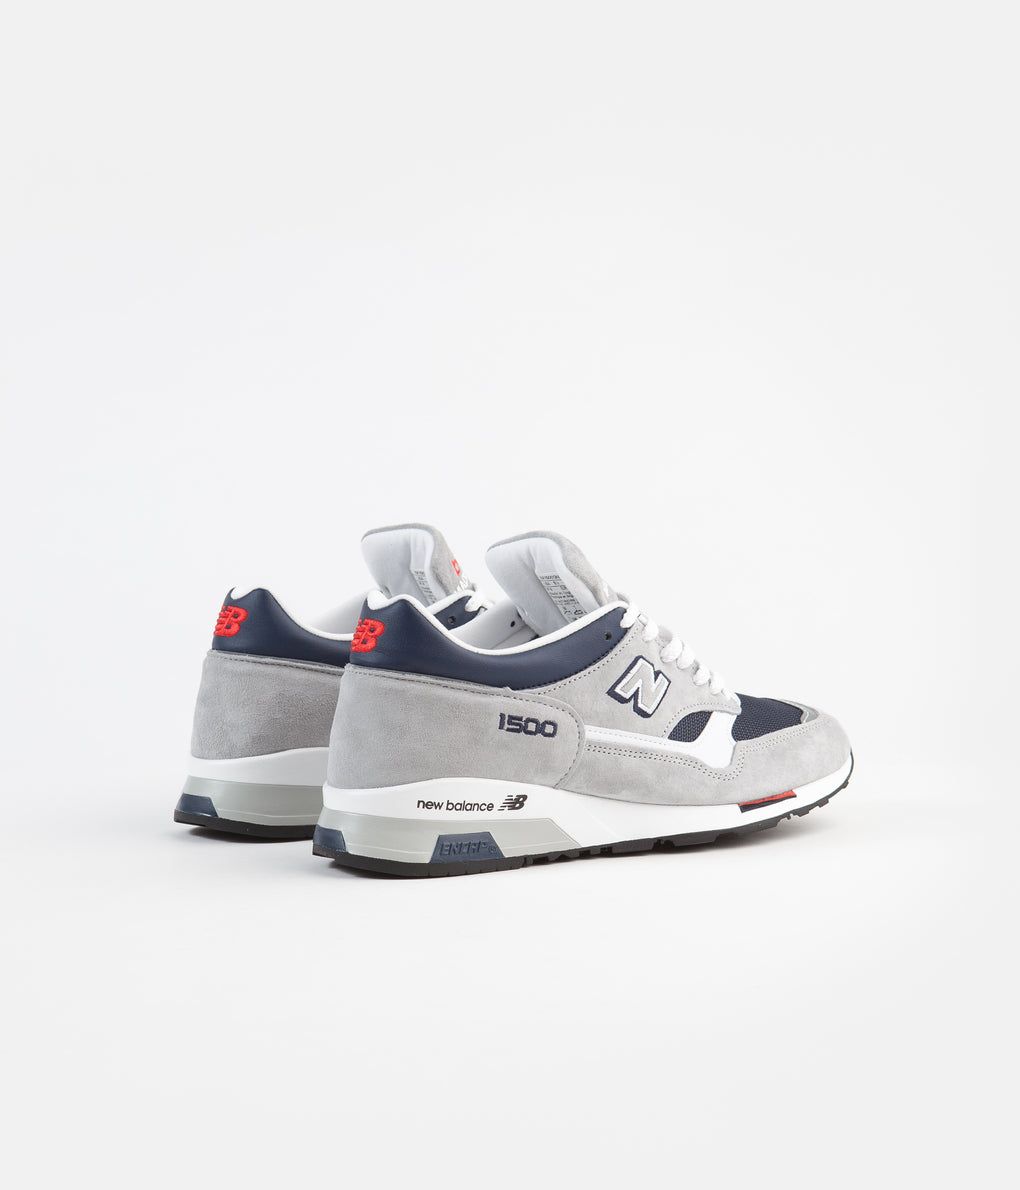 New Balance 1500 Made in UK Shoes - Grey / Navy / Red